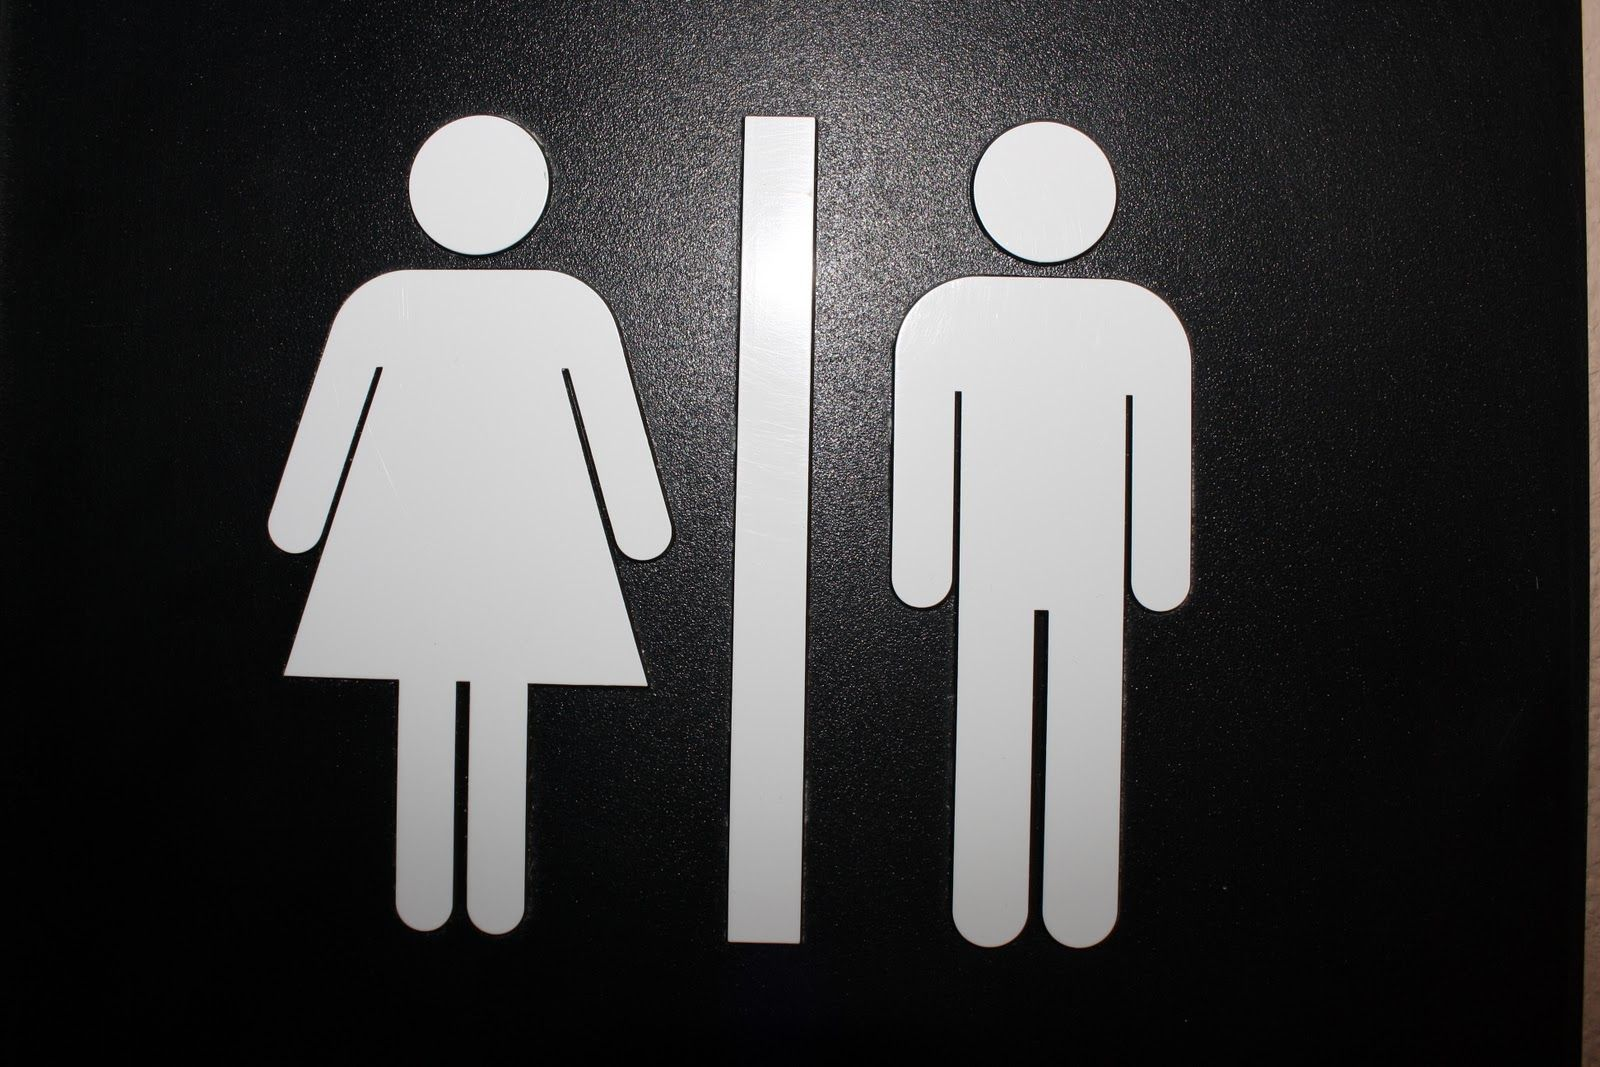 Black And White Bathroom Signs